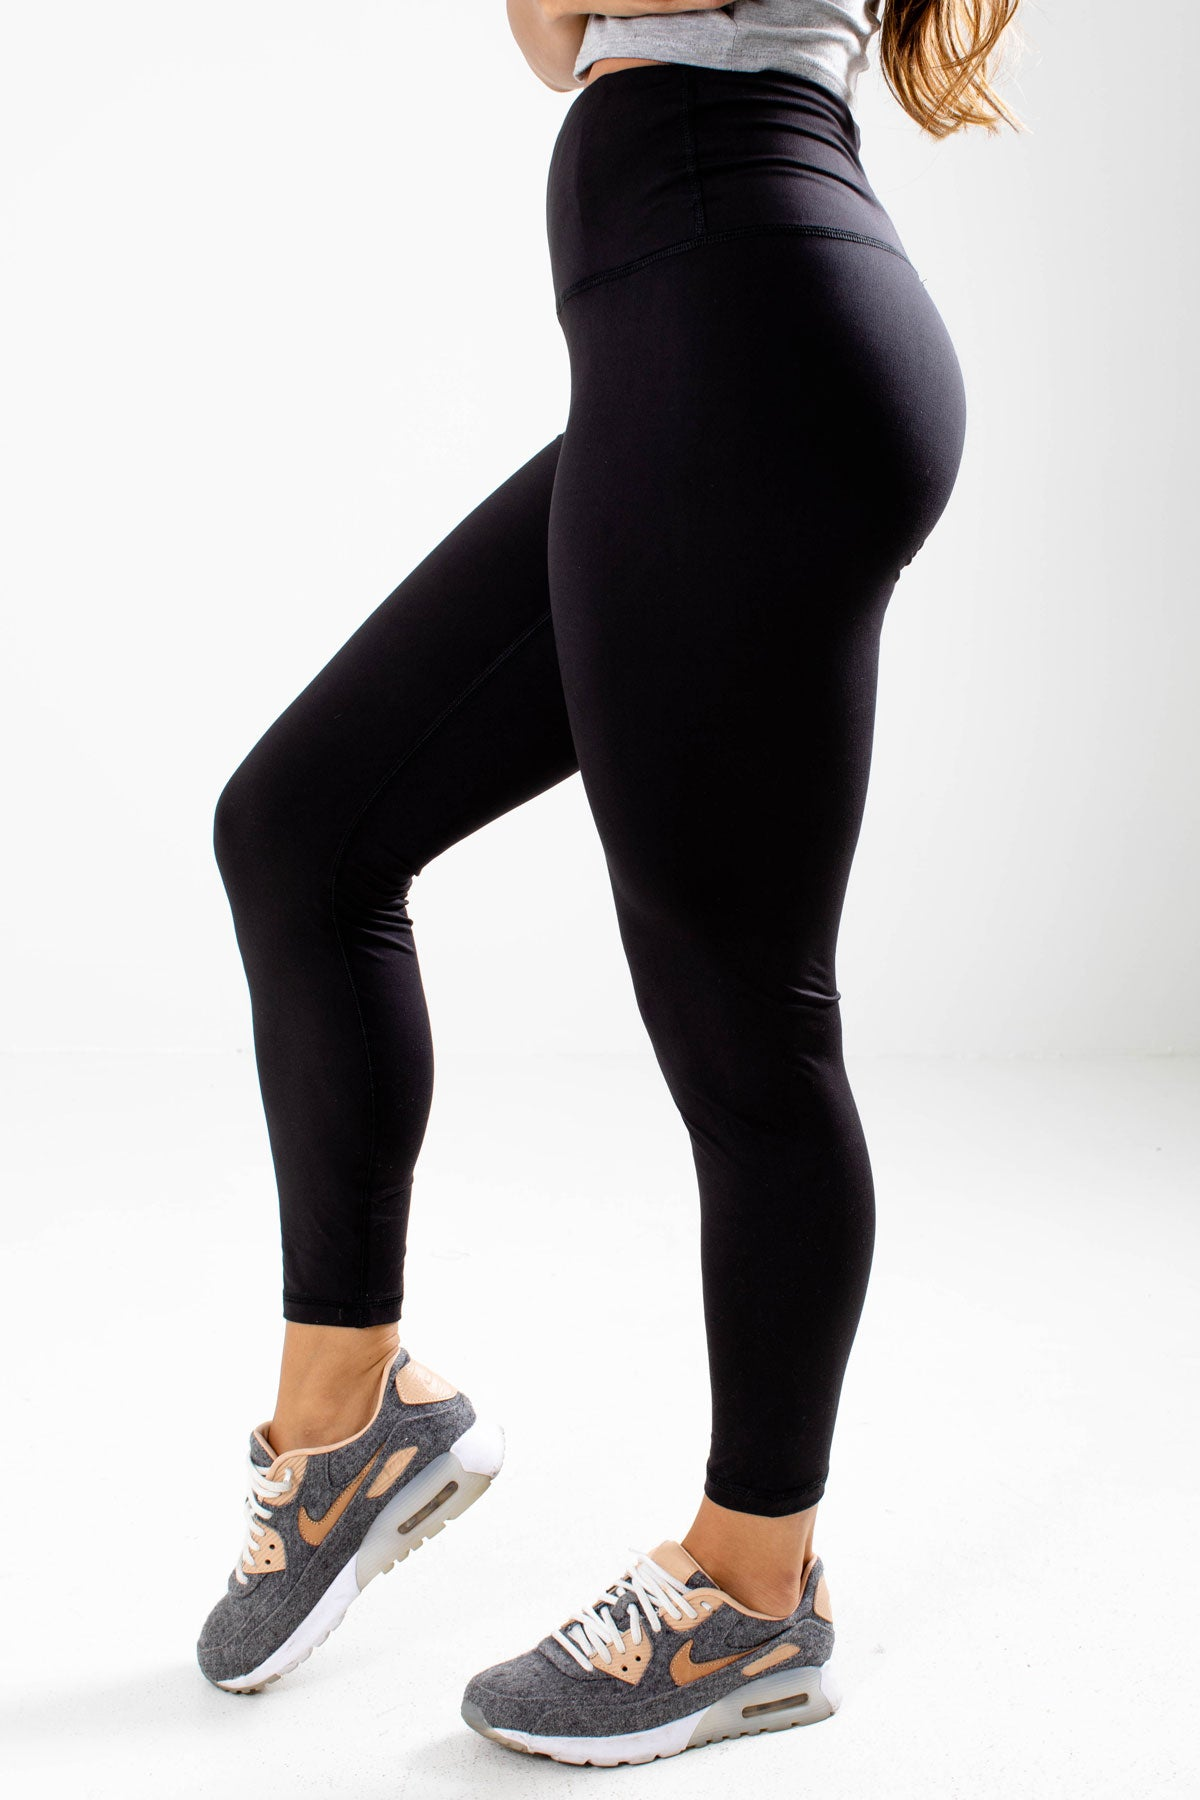 Black High-Waisted Boutique Active Leggings for Women